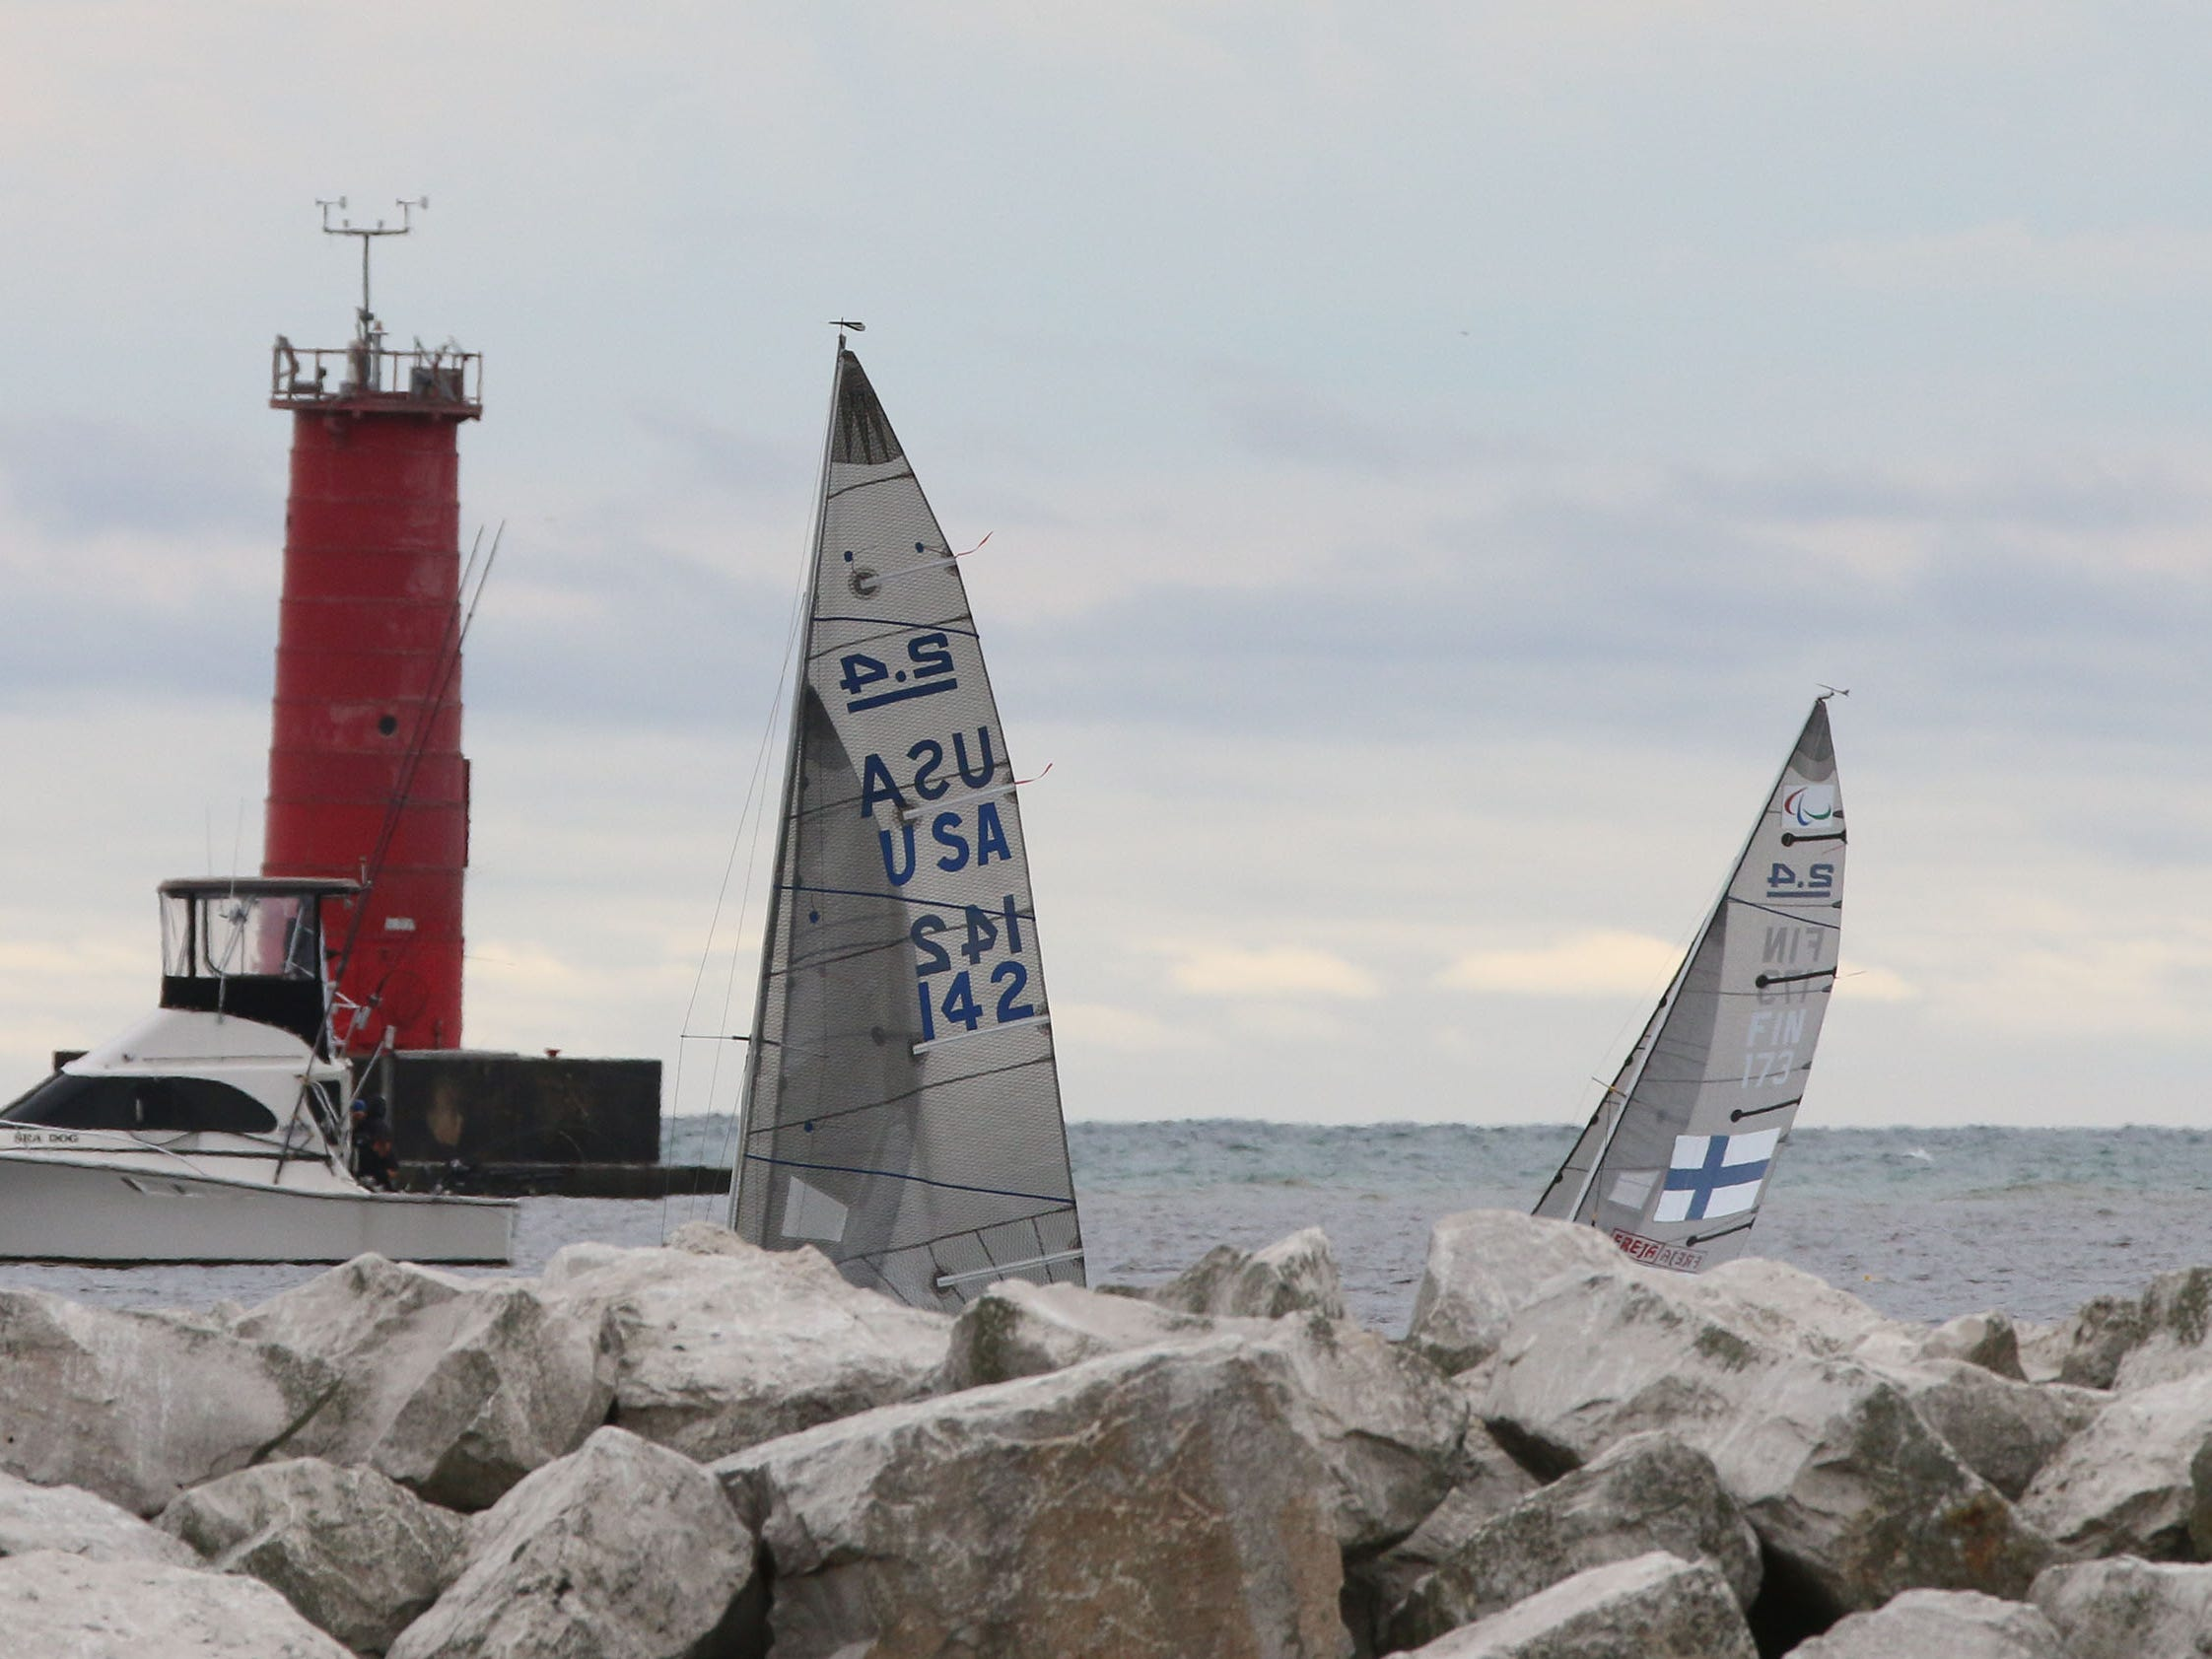 A USA sailor, left, and a Finland sailor heads out to sea to compete in the Para World Sailing Championships, Tuesday, September 18, 2018, in Sheboygan, Wis.